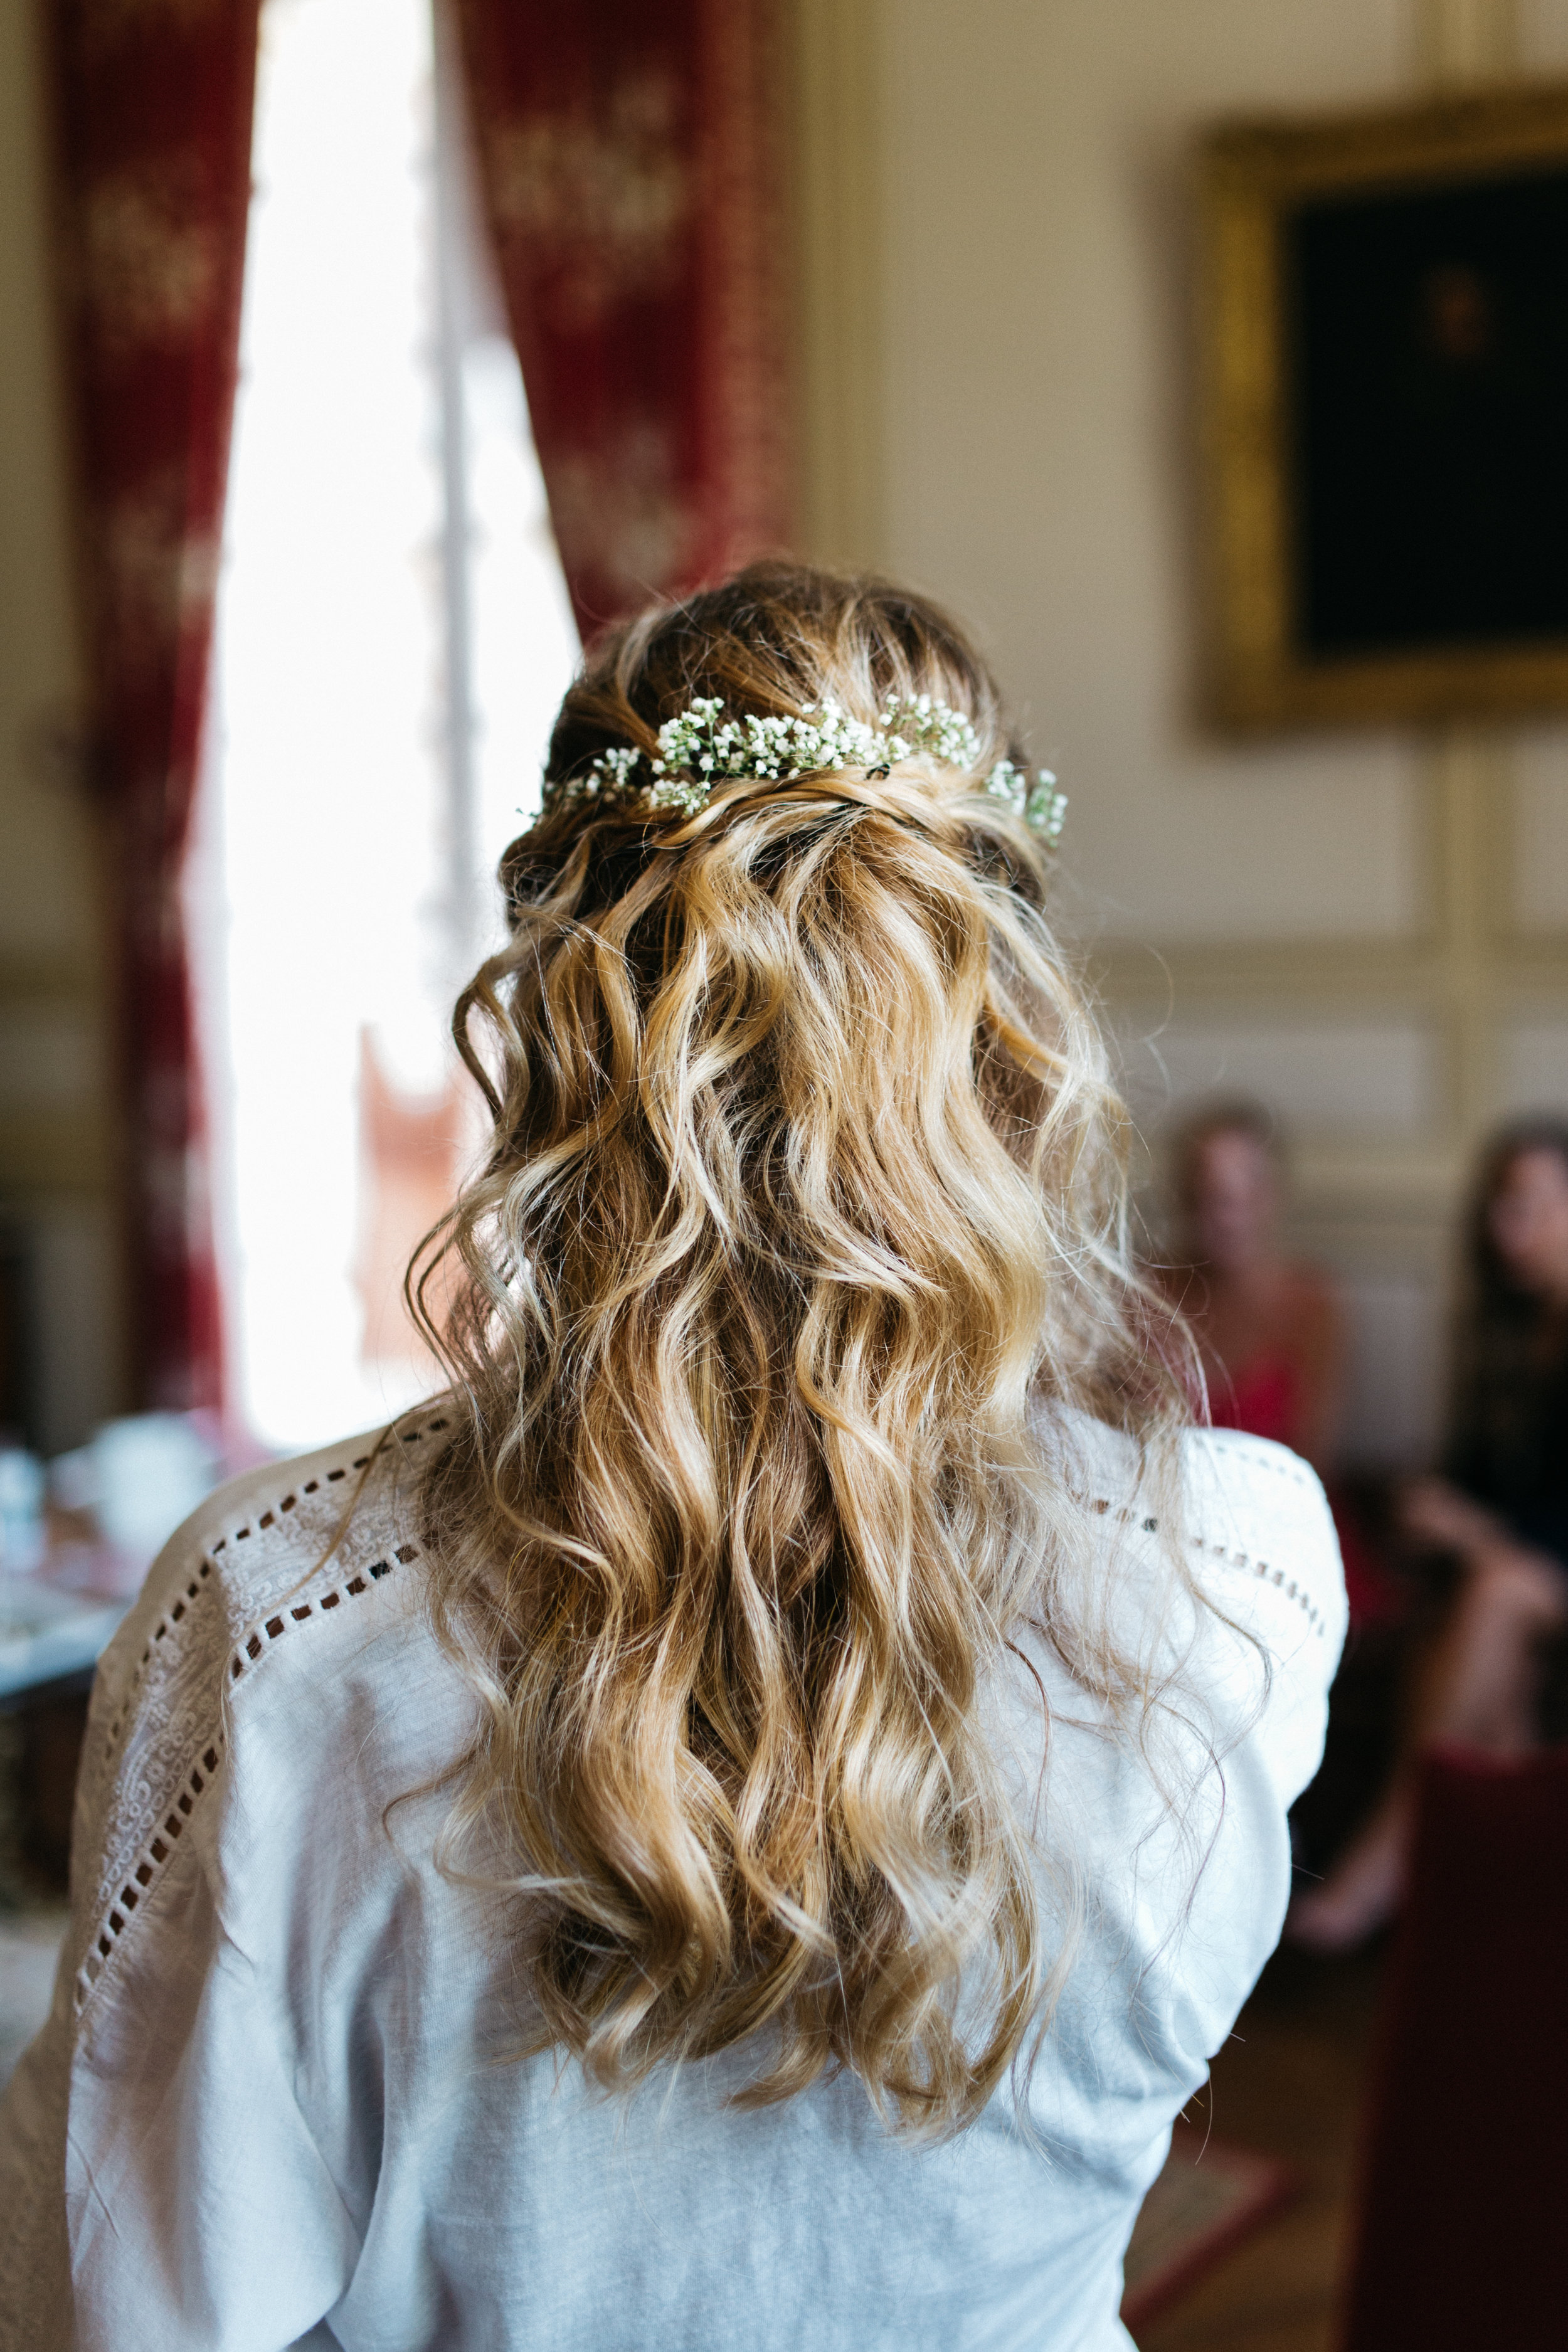 Mariage de Dana, coiffure et maquillage by The reporthair